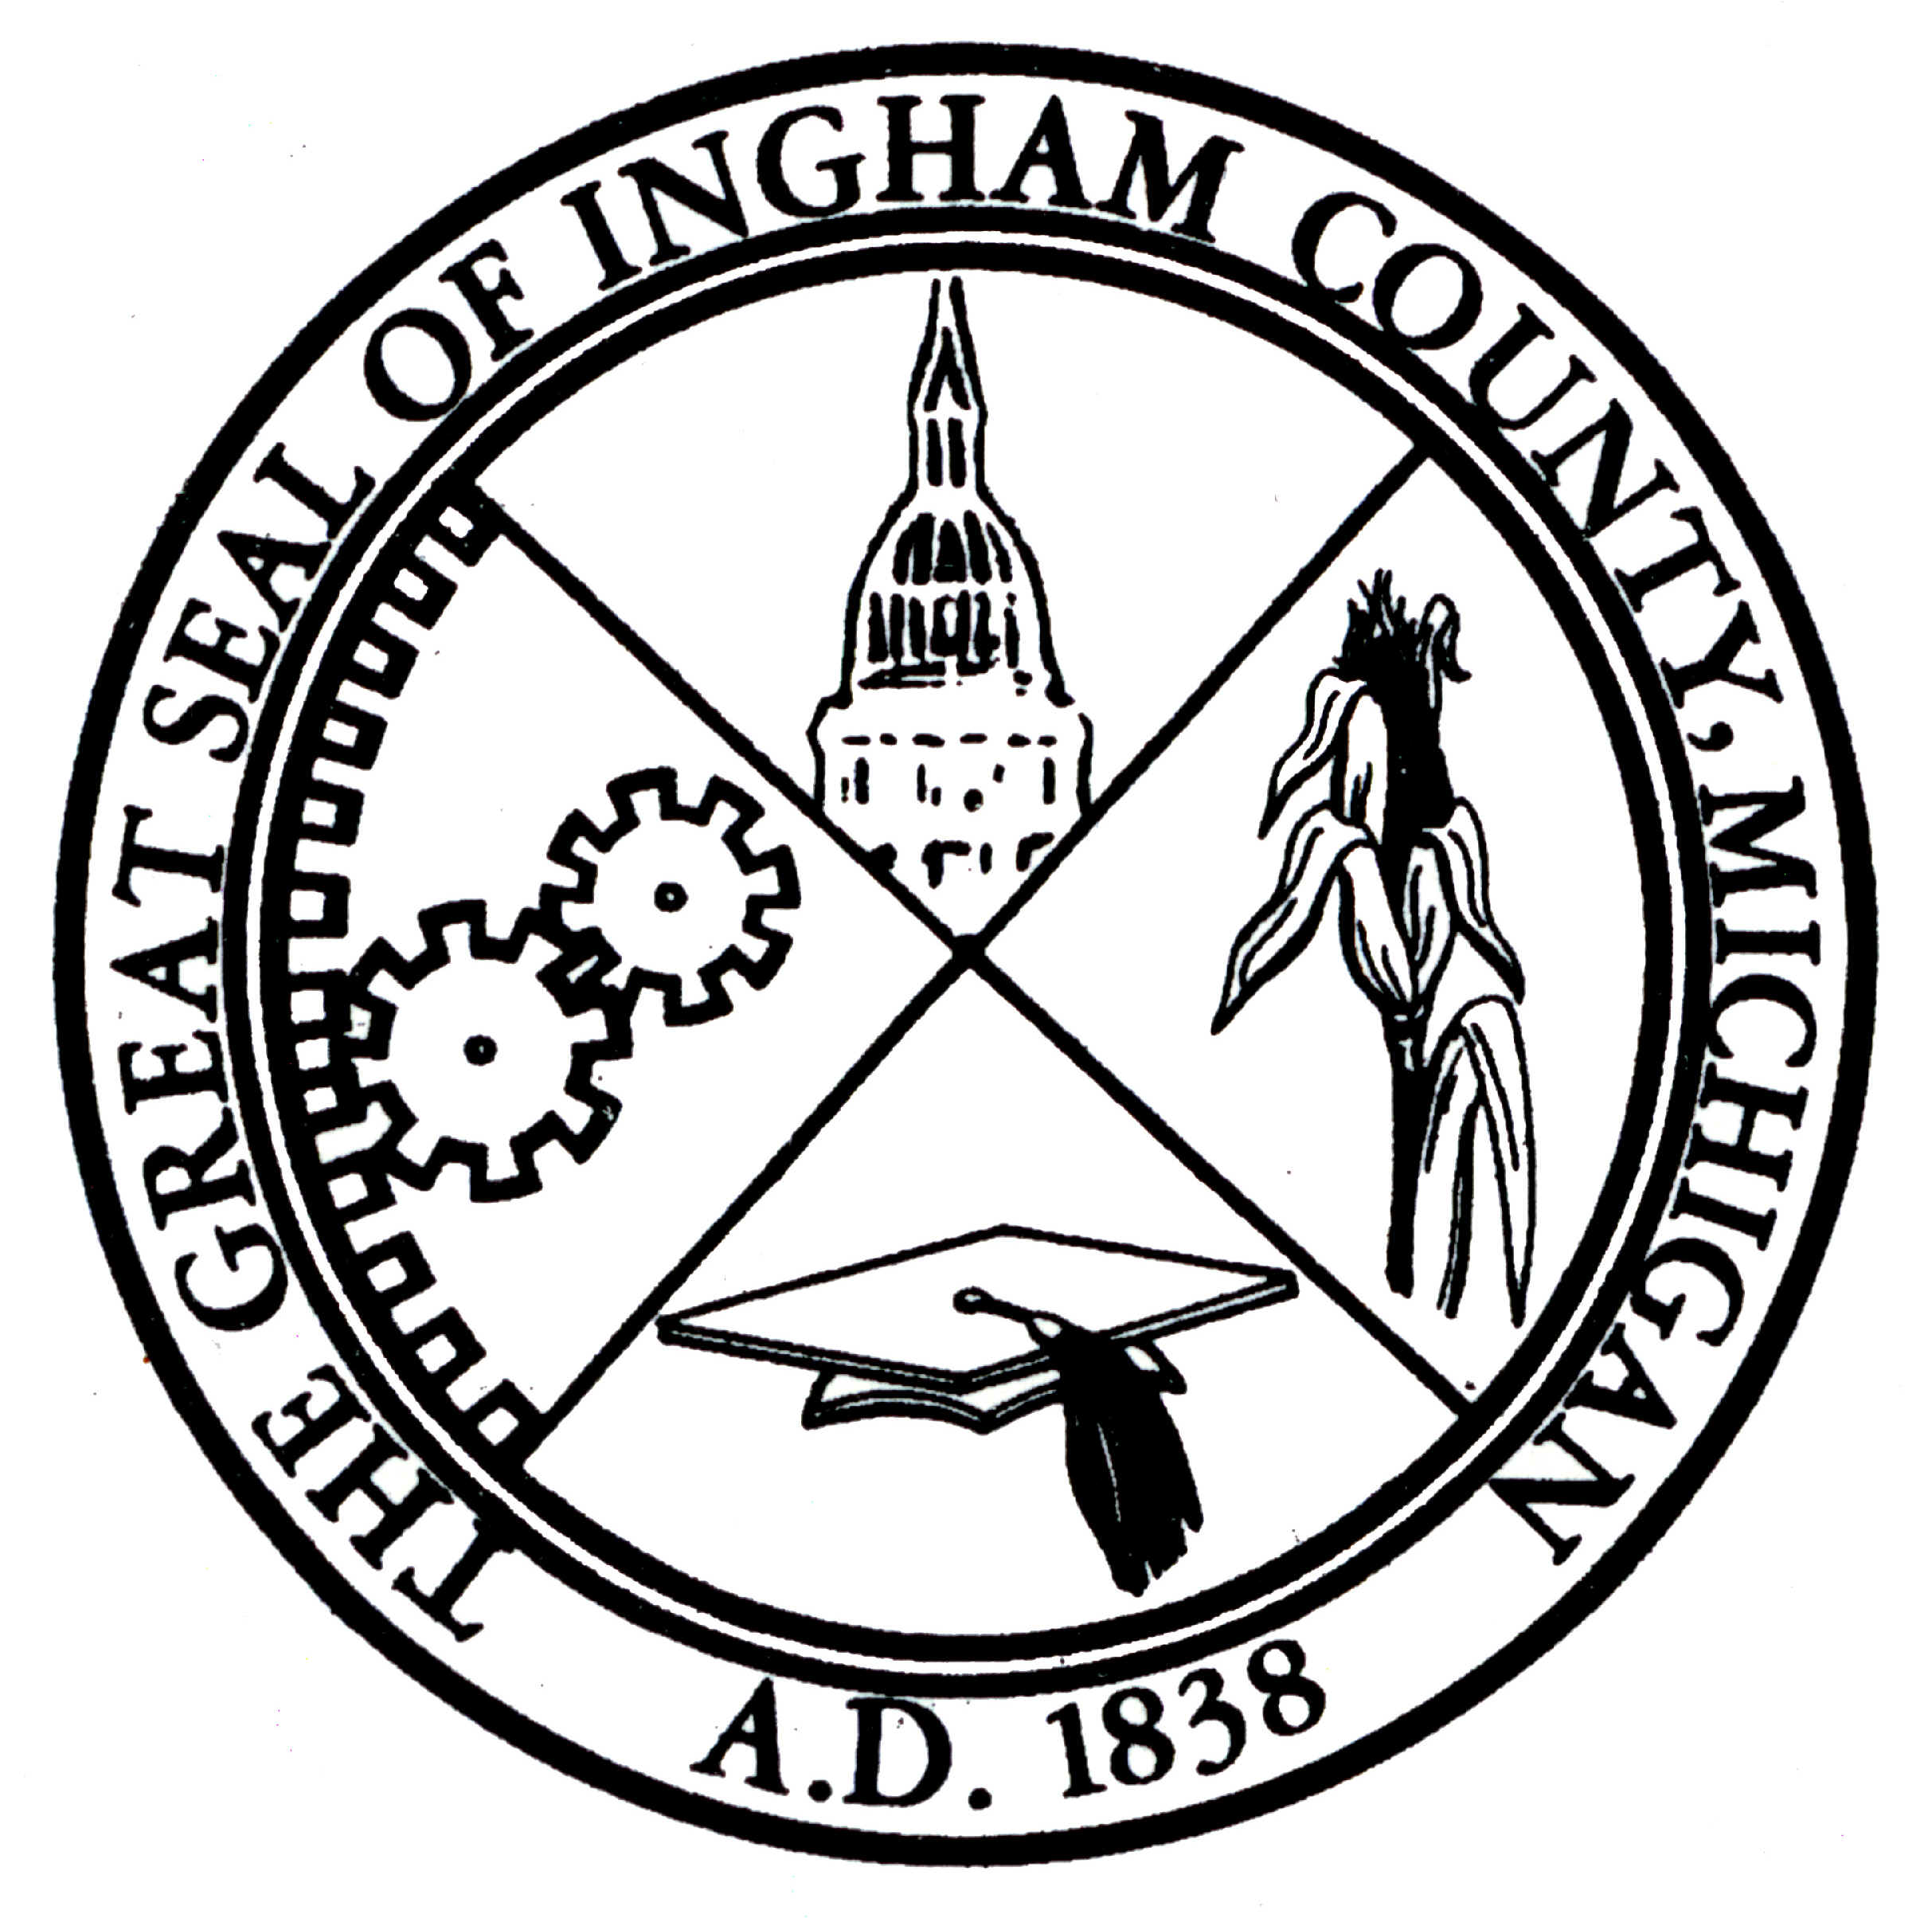 Ingham County Michigan